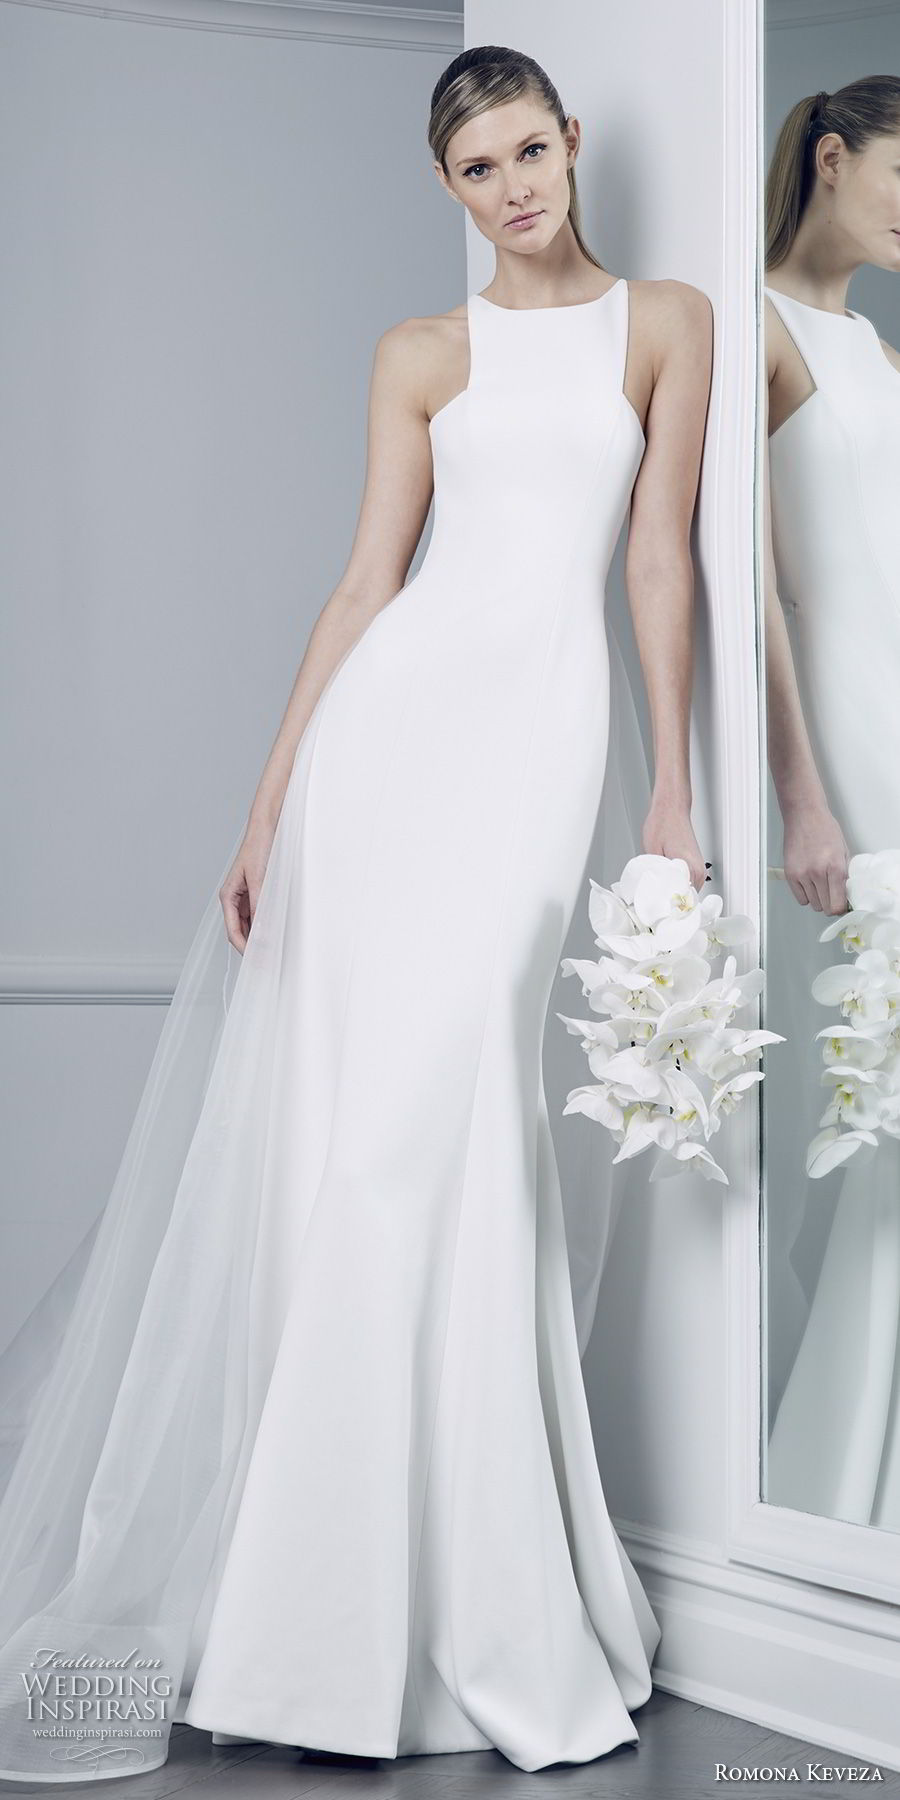 romona keveza fall 2018 bridal sleeveless halter jewel neck simple clean elegant chic fit and flare wedding dress chapel train (6) mv